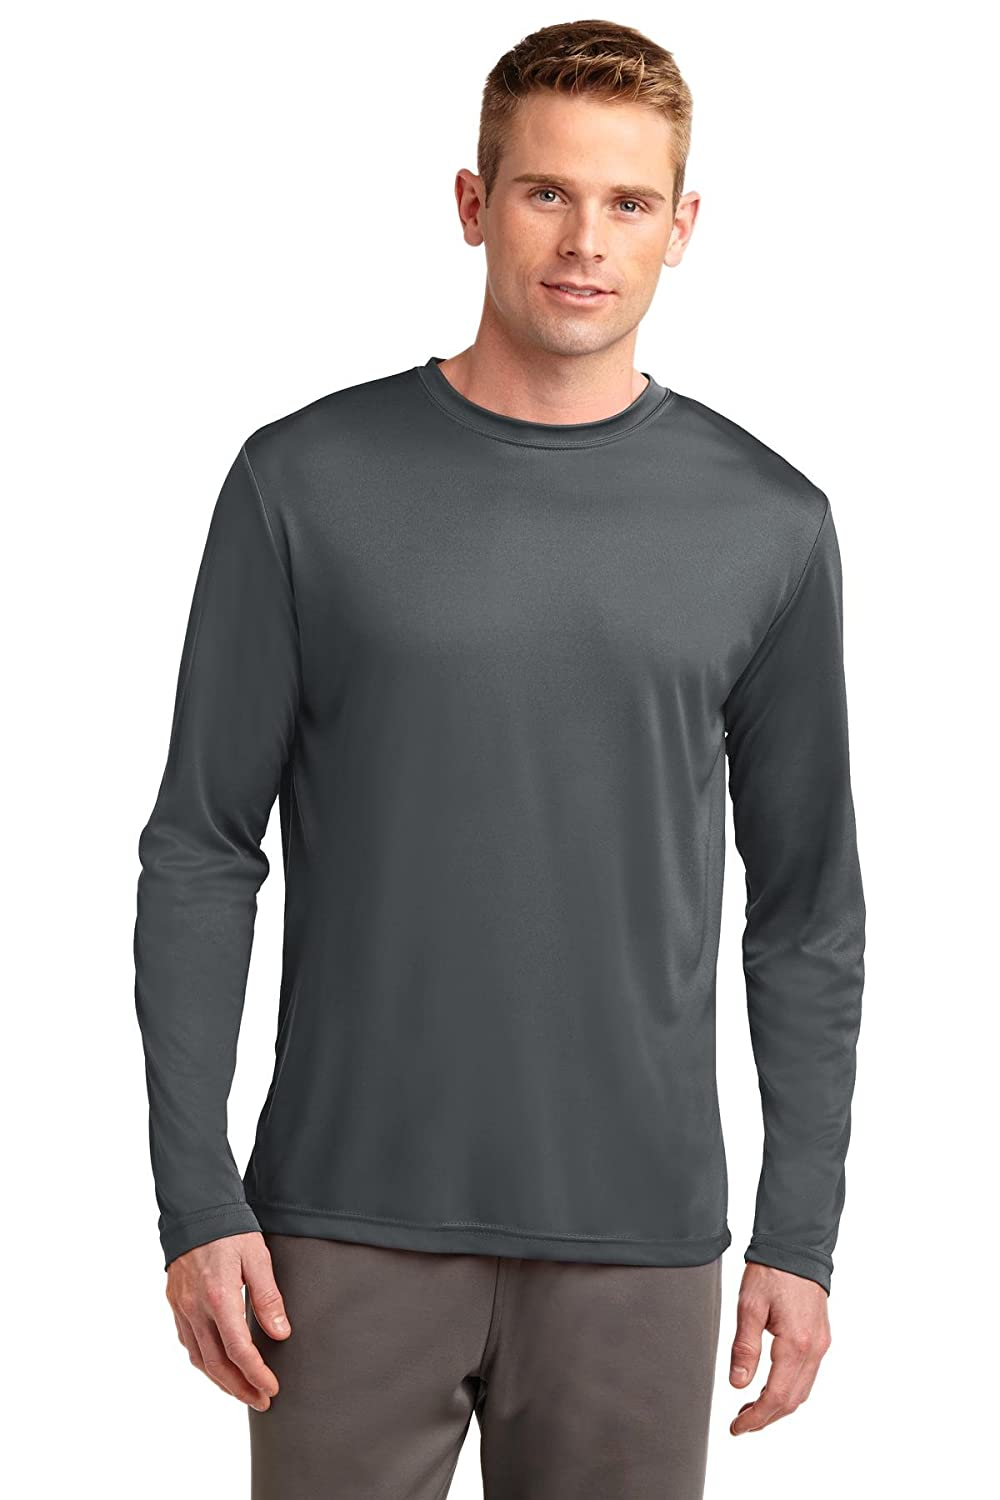 Sport-Tek Men's Athletic Sport-Tek Men's Athletic TST350LS